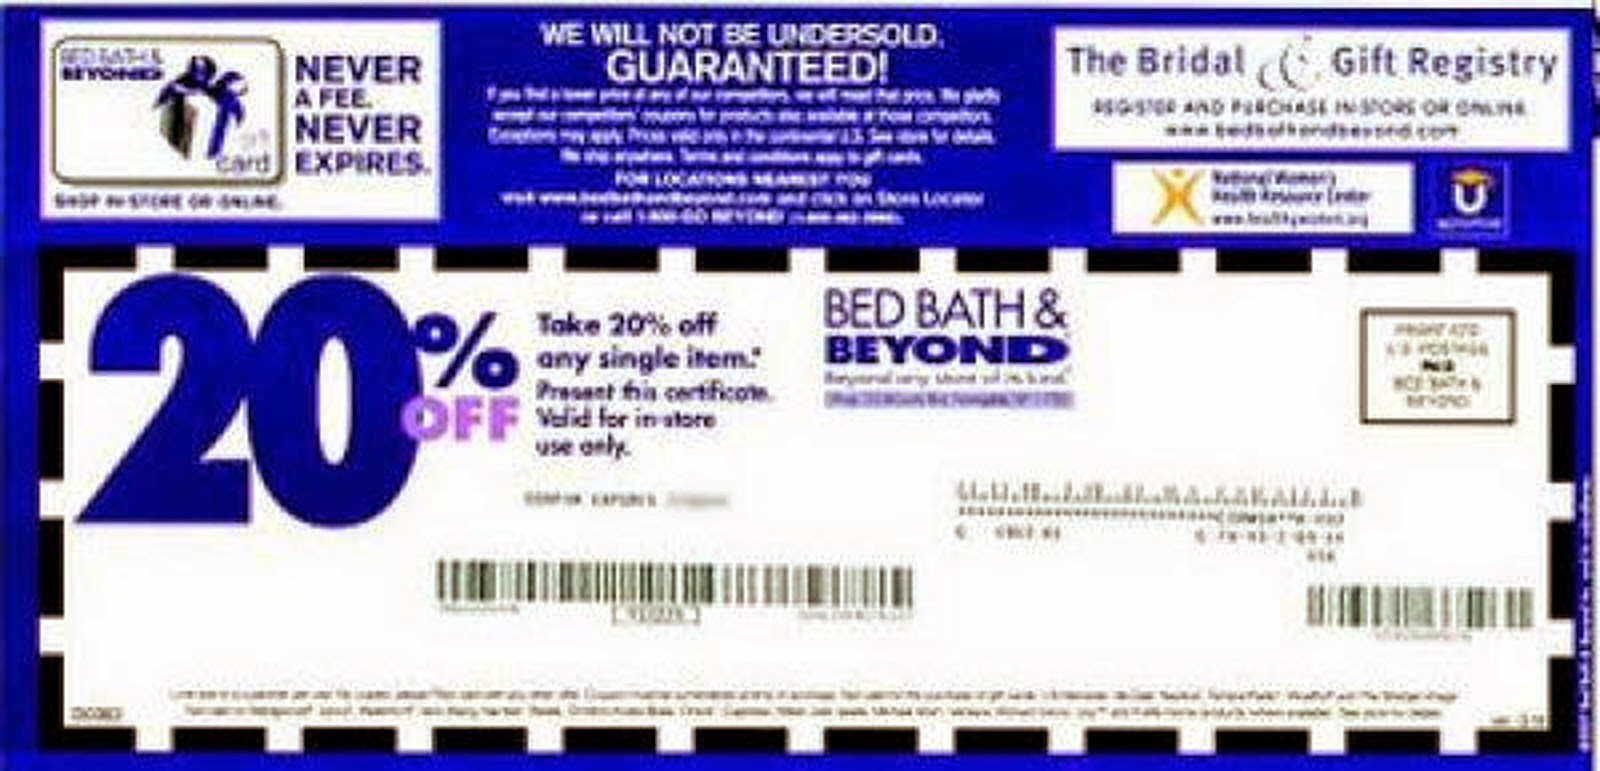 Bed bath and beyond coupon printable march 2018